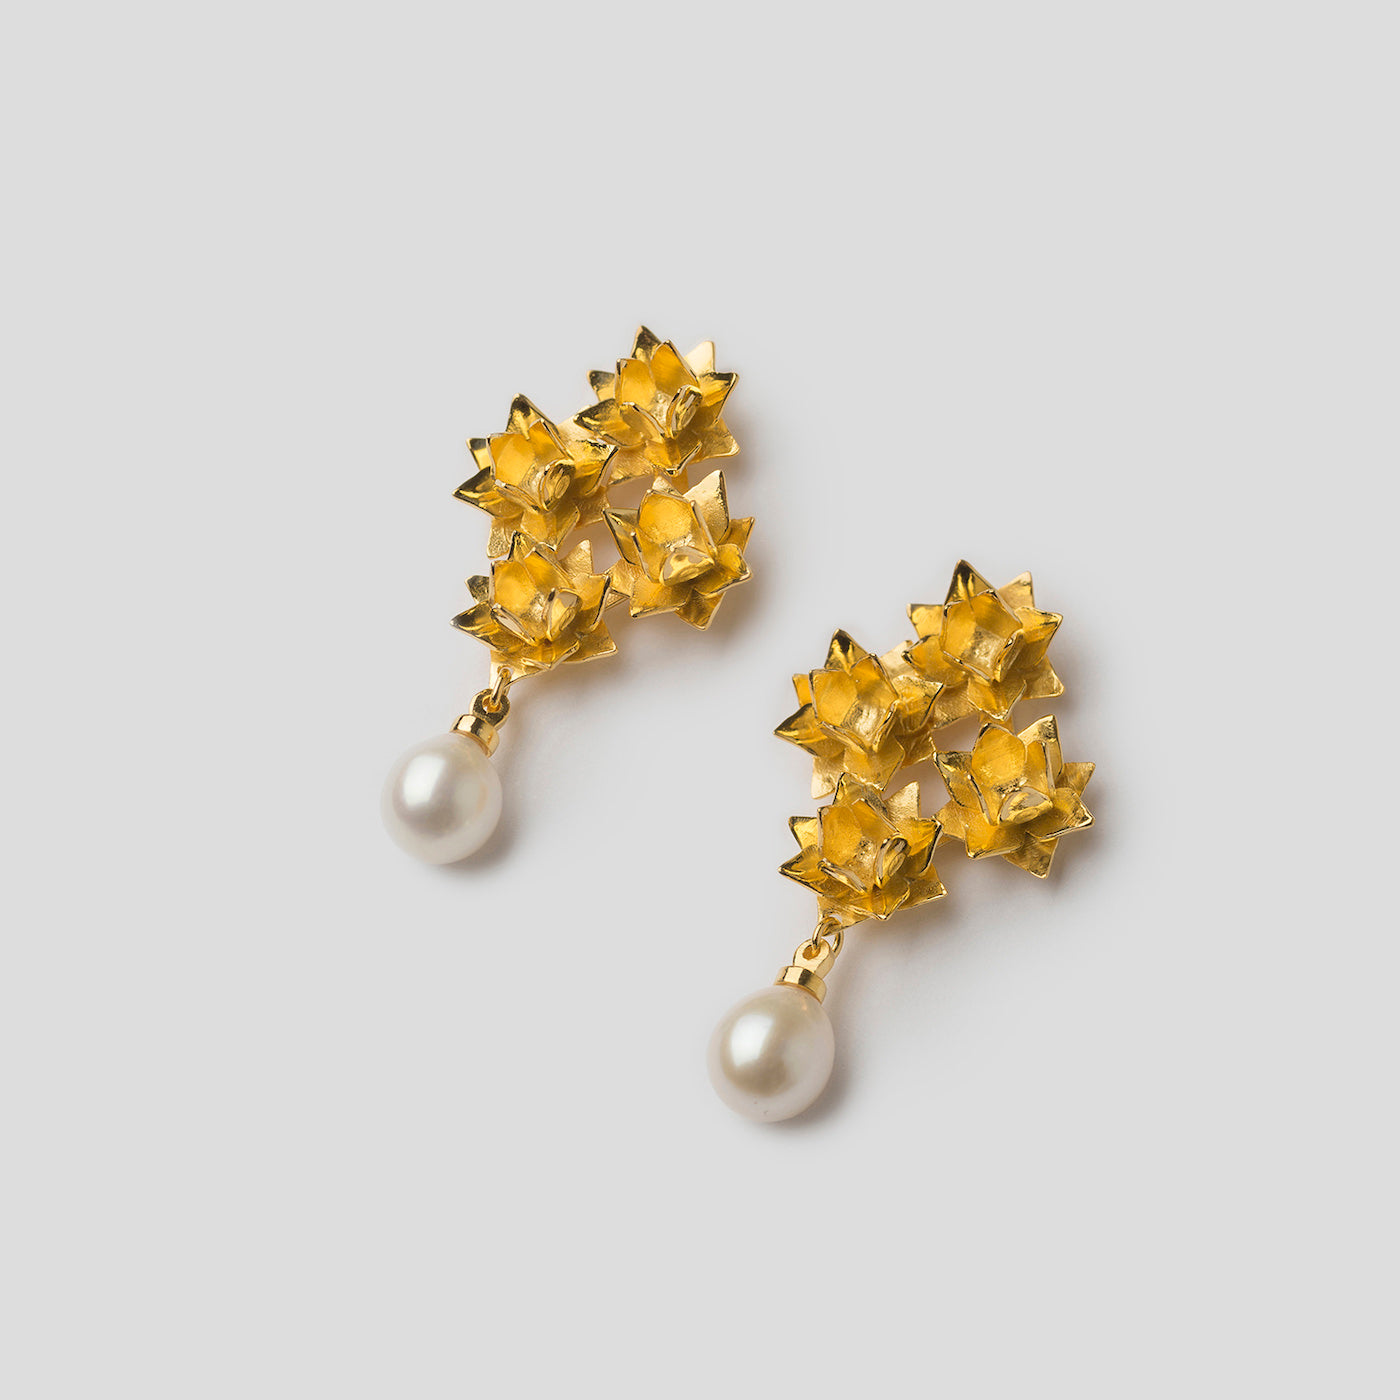 Gold four lotus pearl earrings on angle on white background